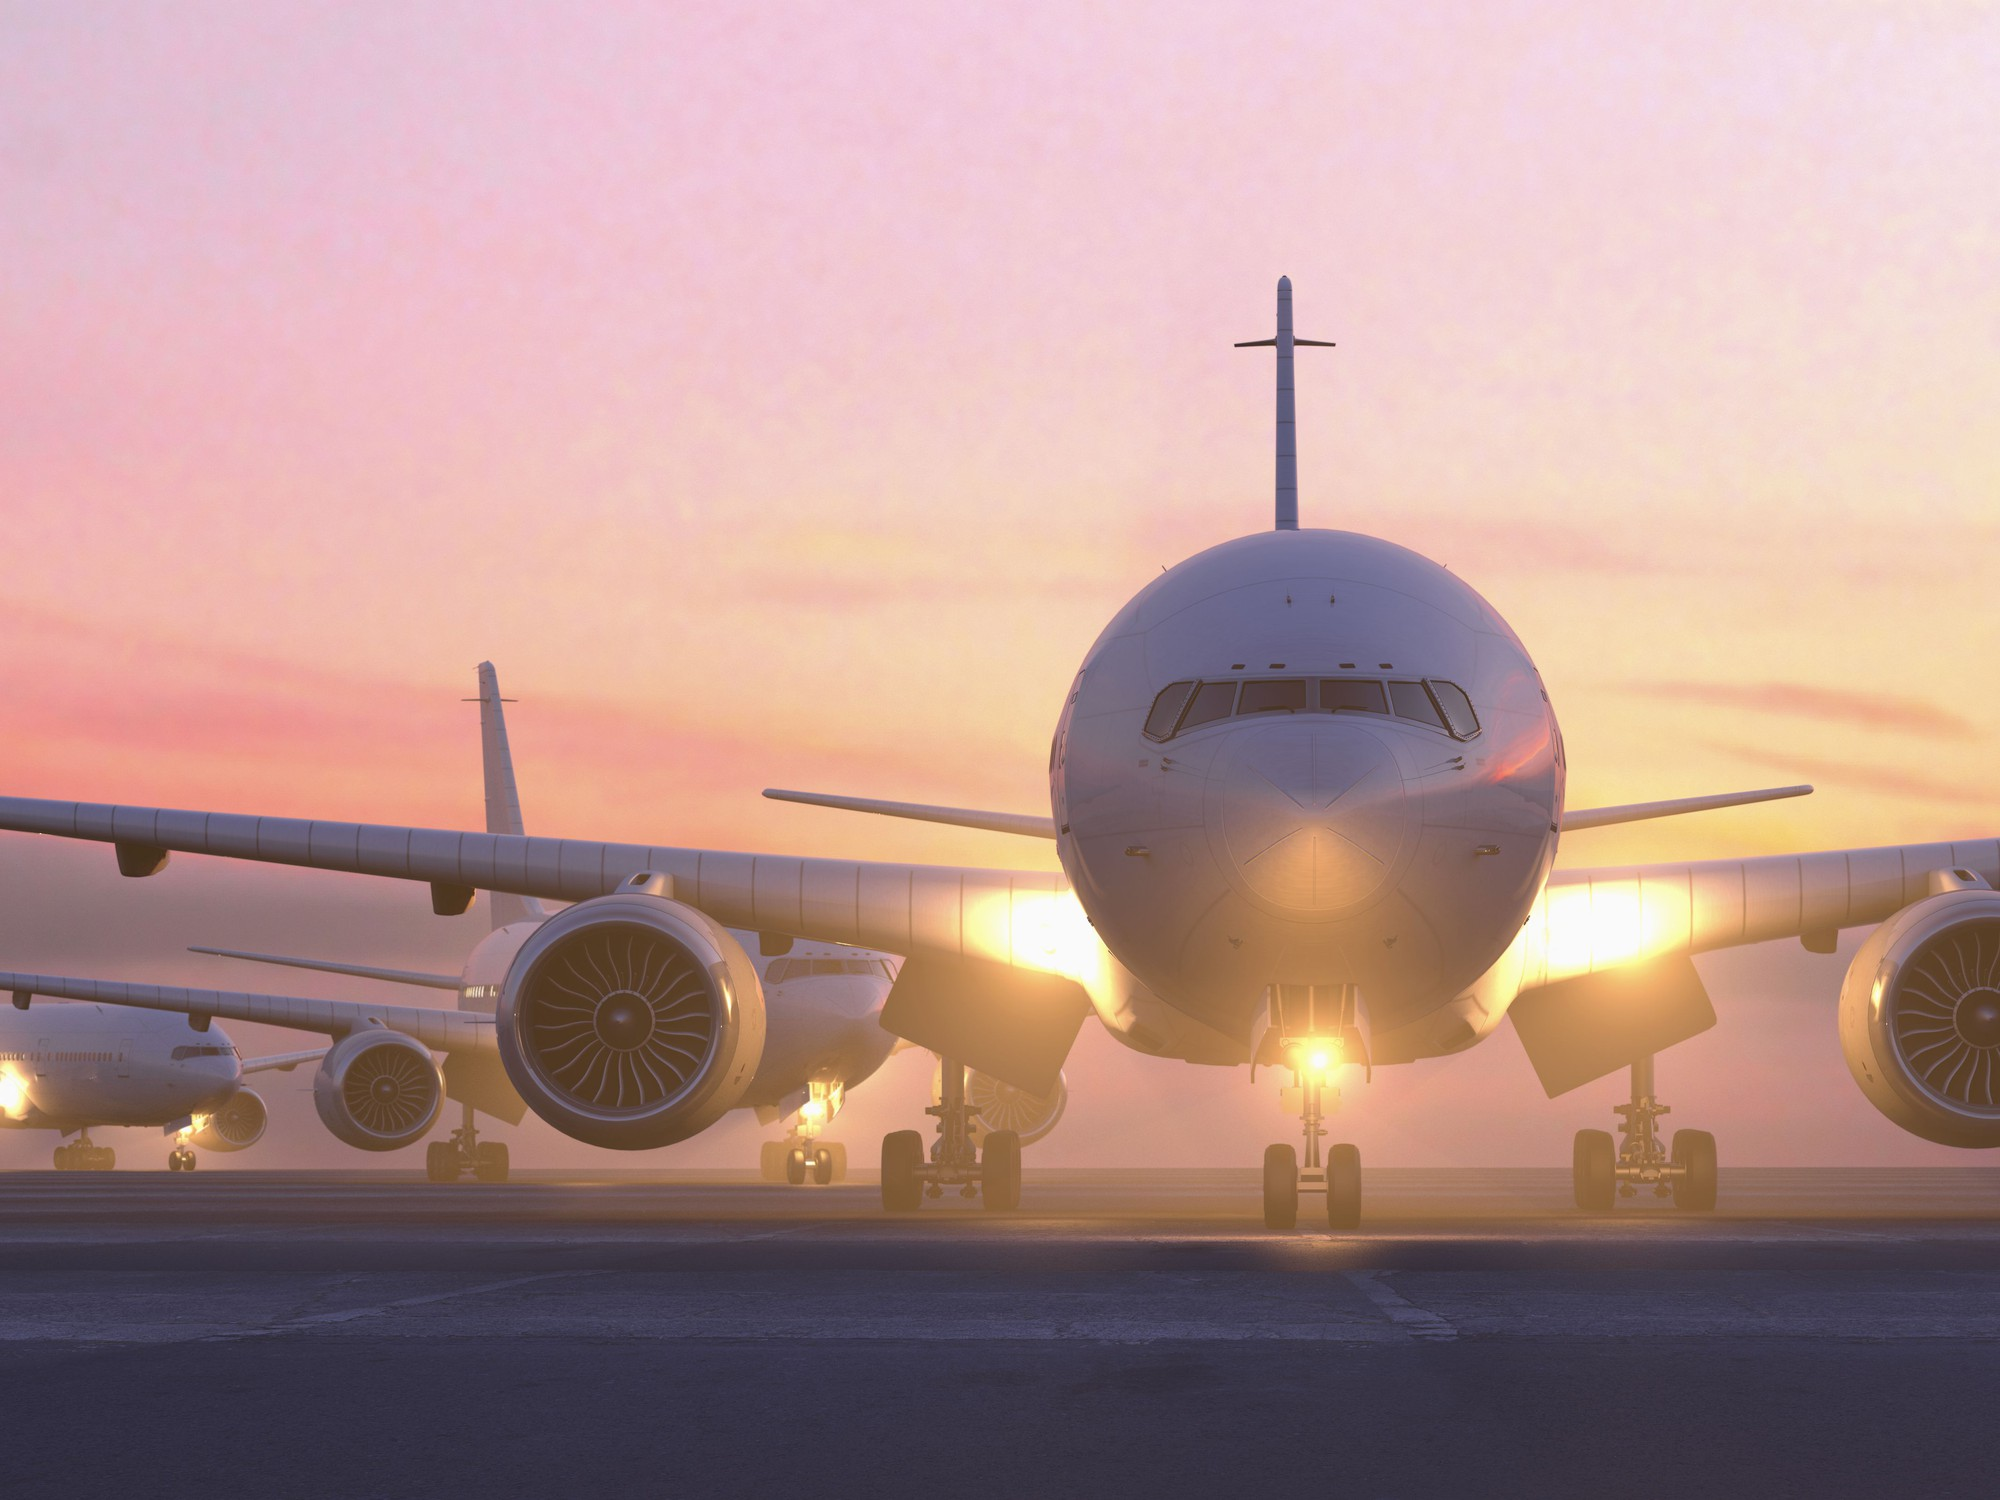 airplanes-taxiing-on-runway-at-sunset-685007399-5a7cd2b1fa6bcc0037137e1d